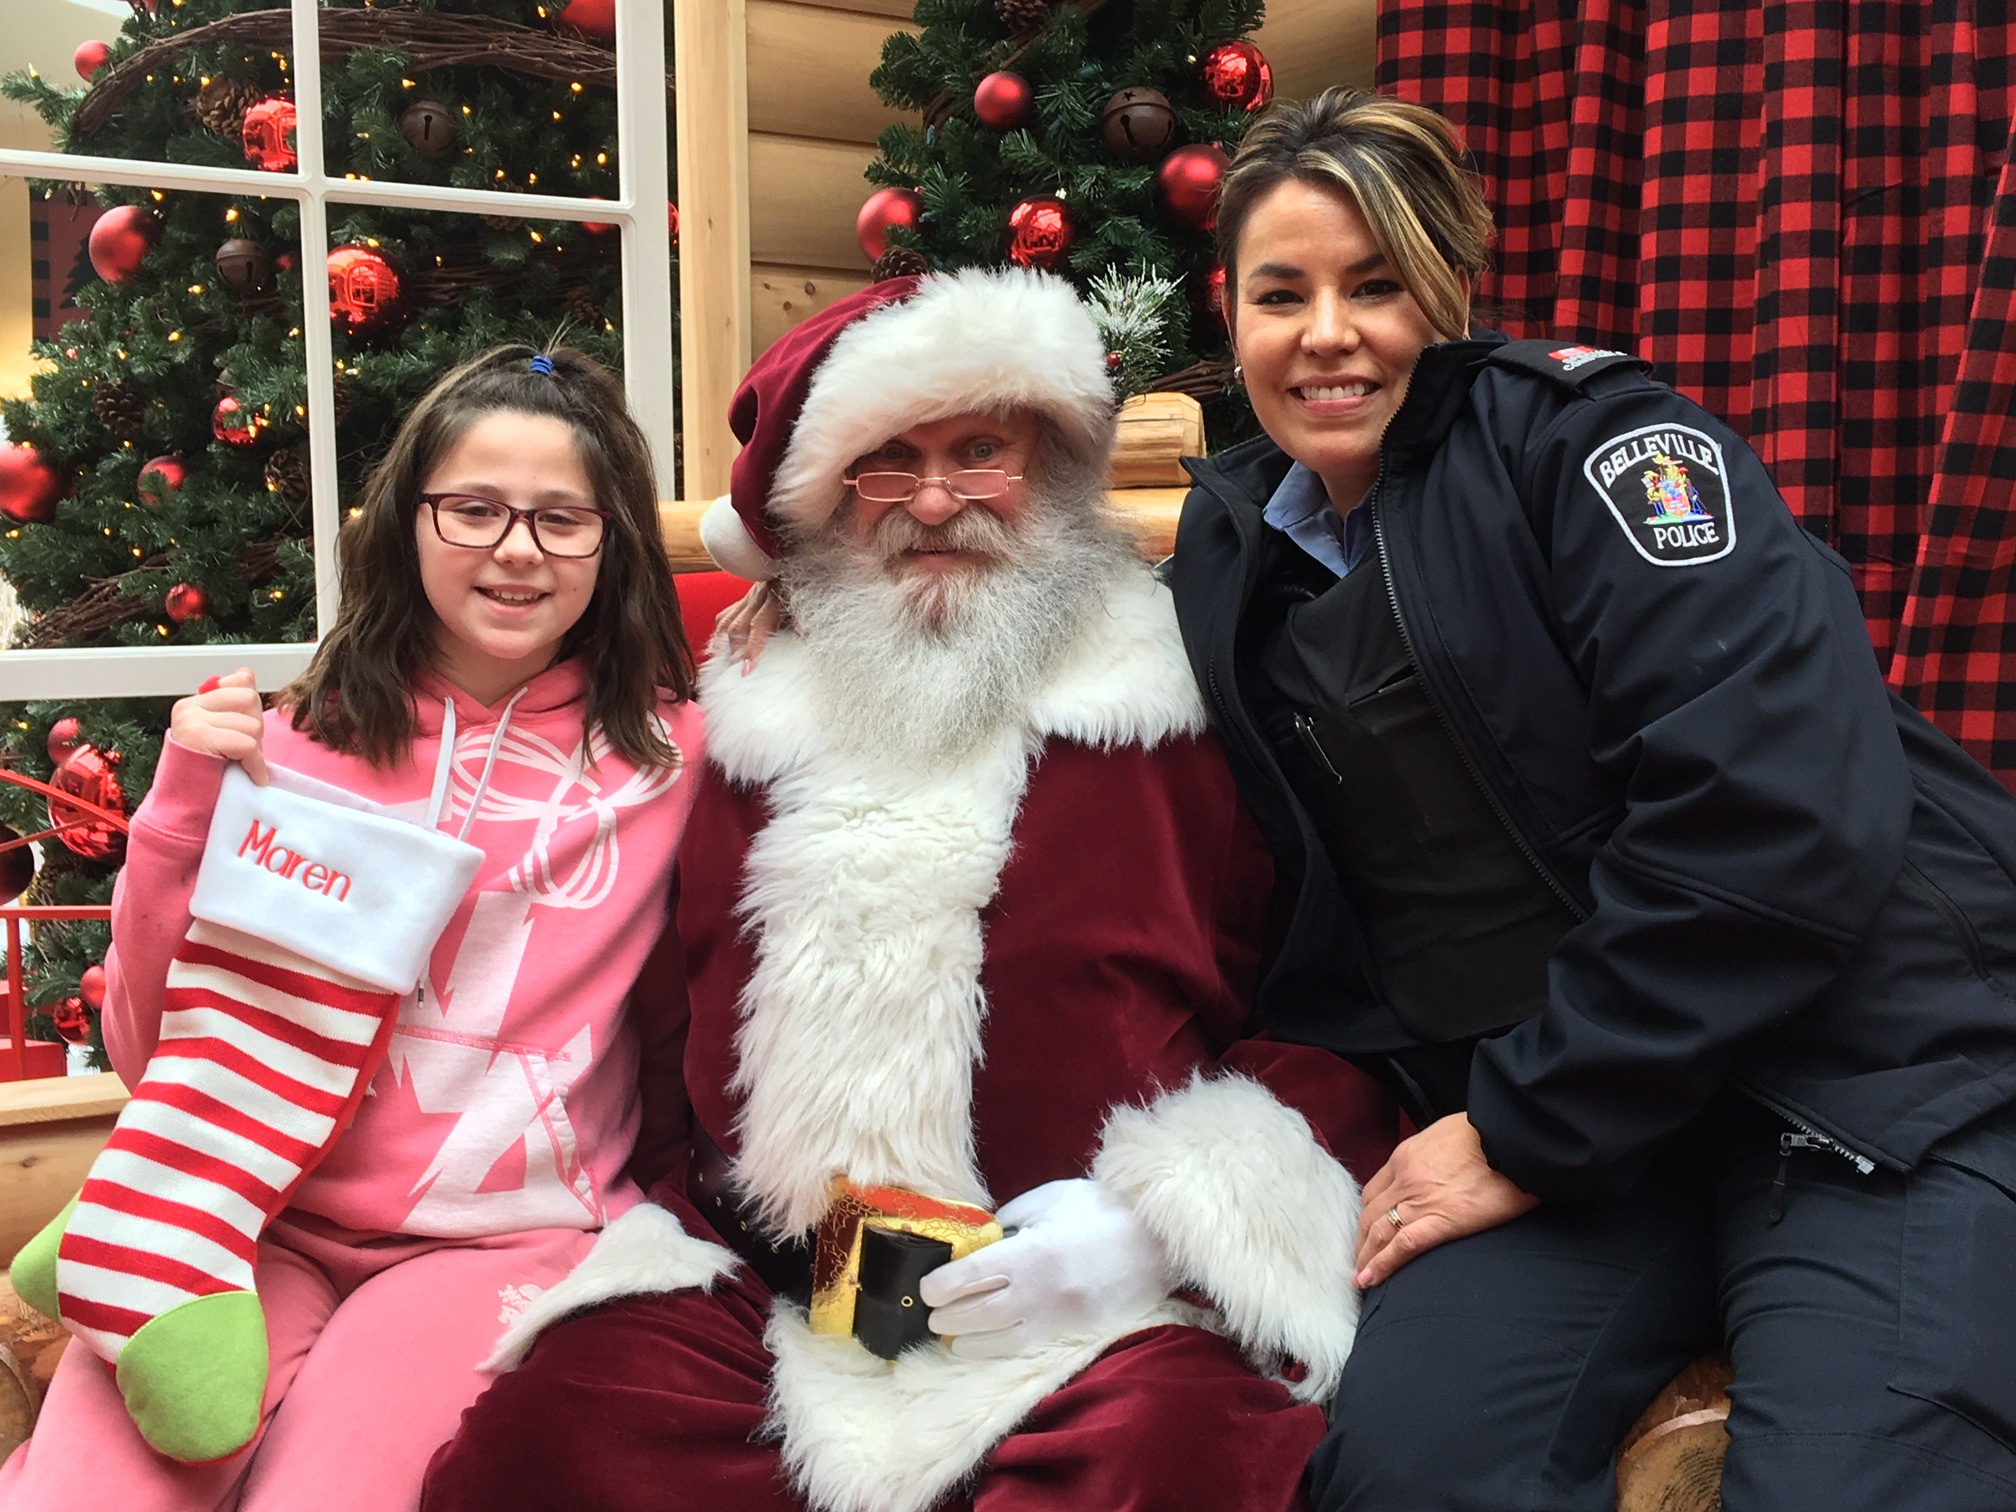 Cop Shop event a highlight of the year